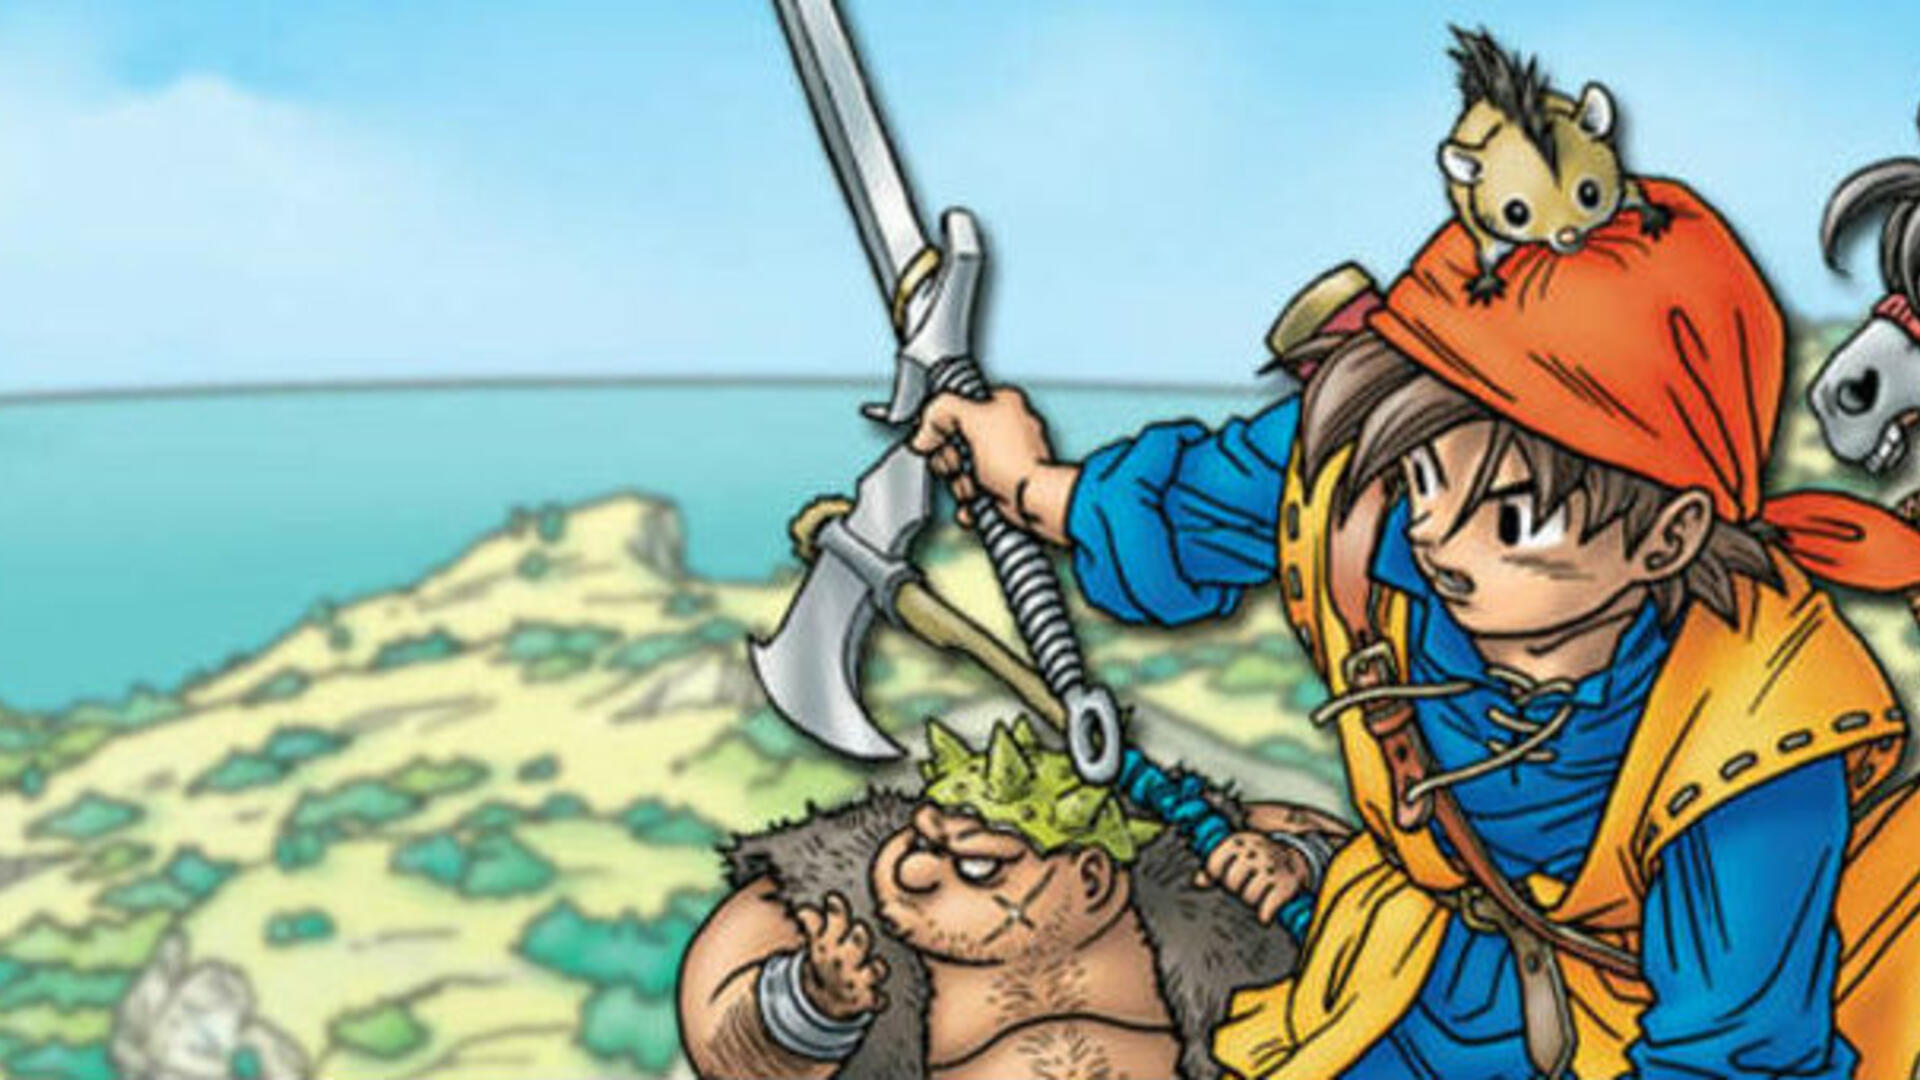 Should You Buy Dragon Quest VIII for the Nintendo 3DS?